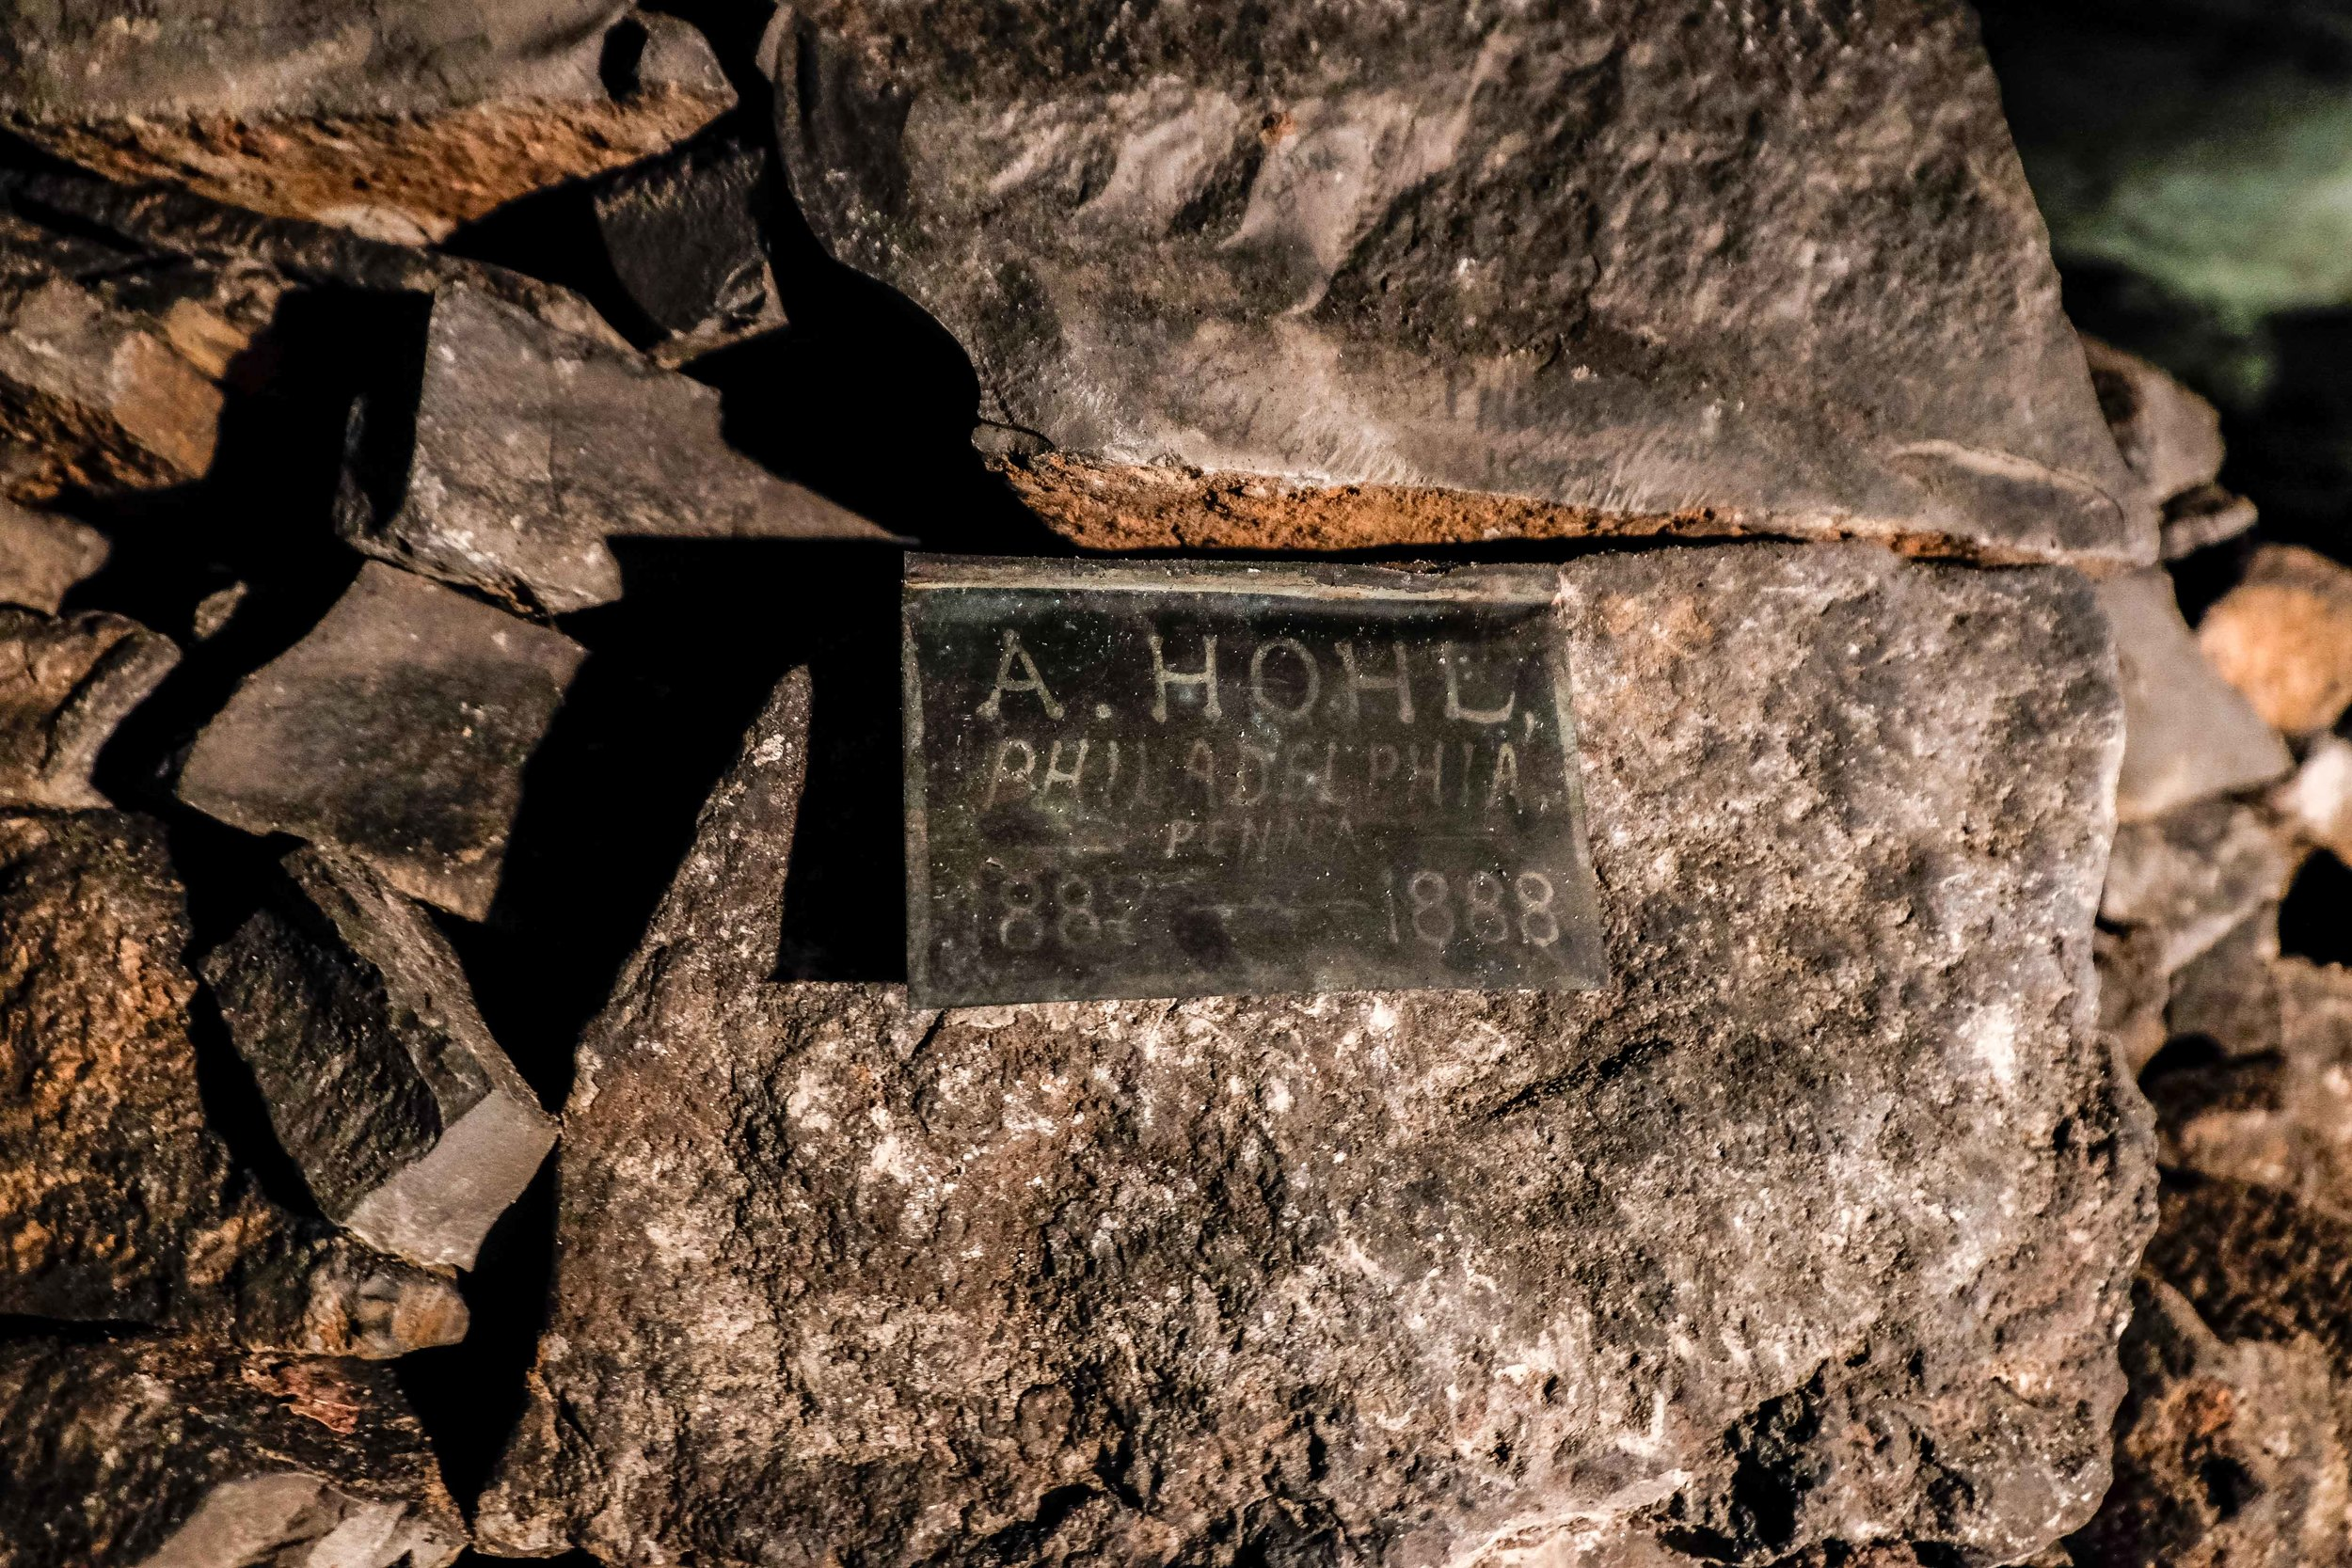 Some A. Hohl (A-Hole?) from Pennsylvania thought it was a good idea to put a sign up of his visit to the cave in 1888.